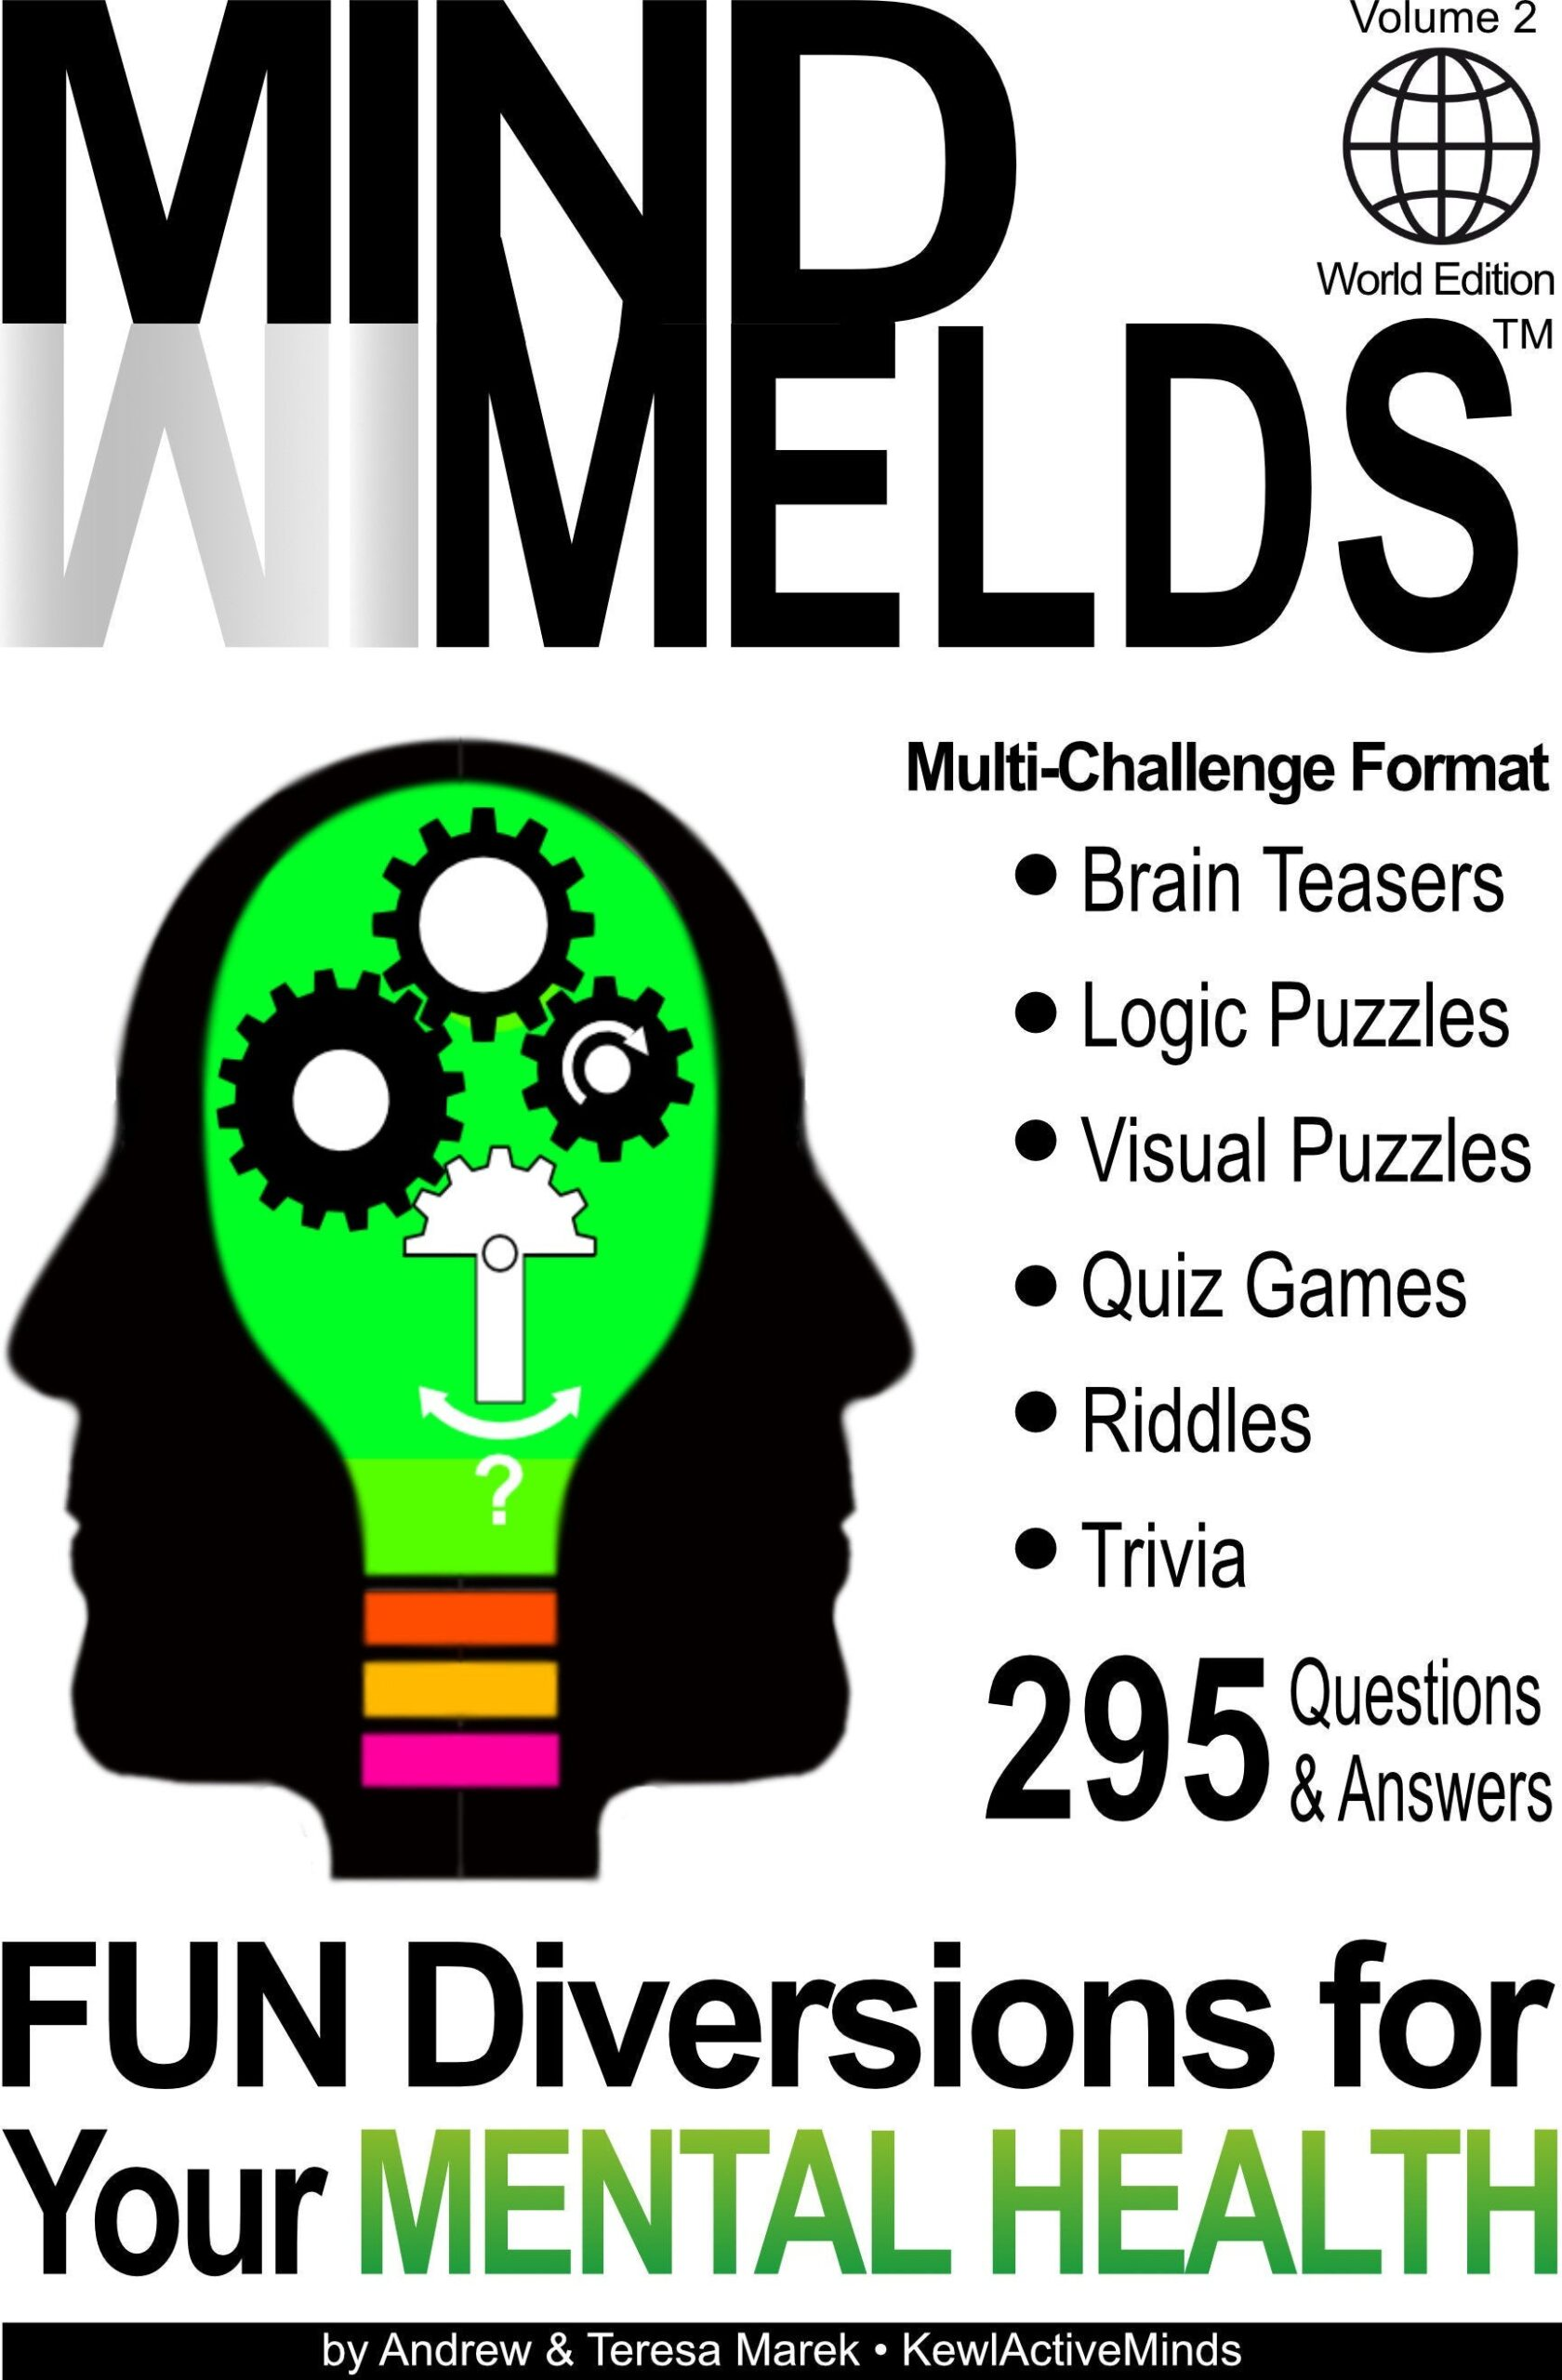 KewlActiveMinds MindMelds Vol 2, World Edition - Brain Teasers, Visual and logic Puzzles, Riddles and Trivia Games